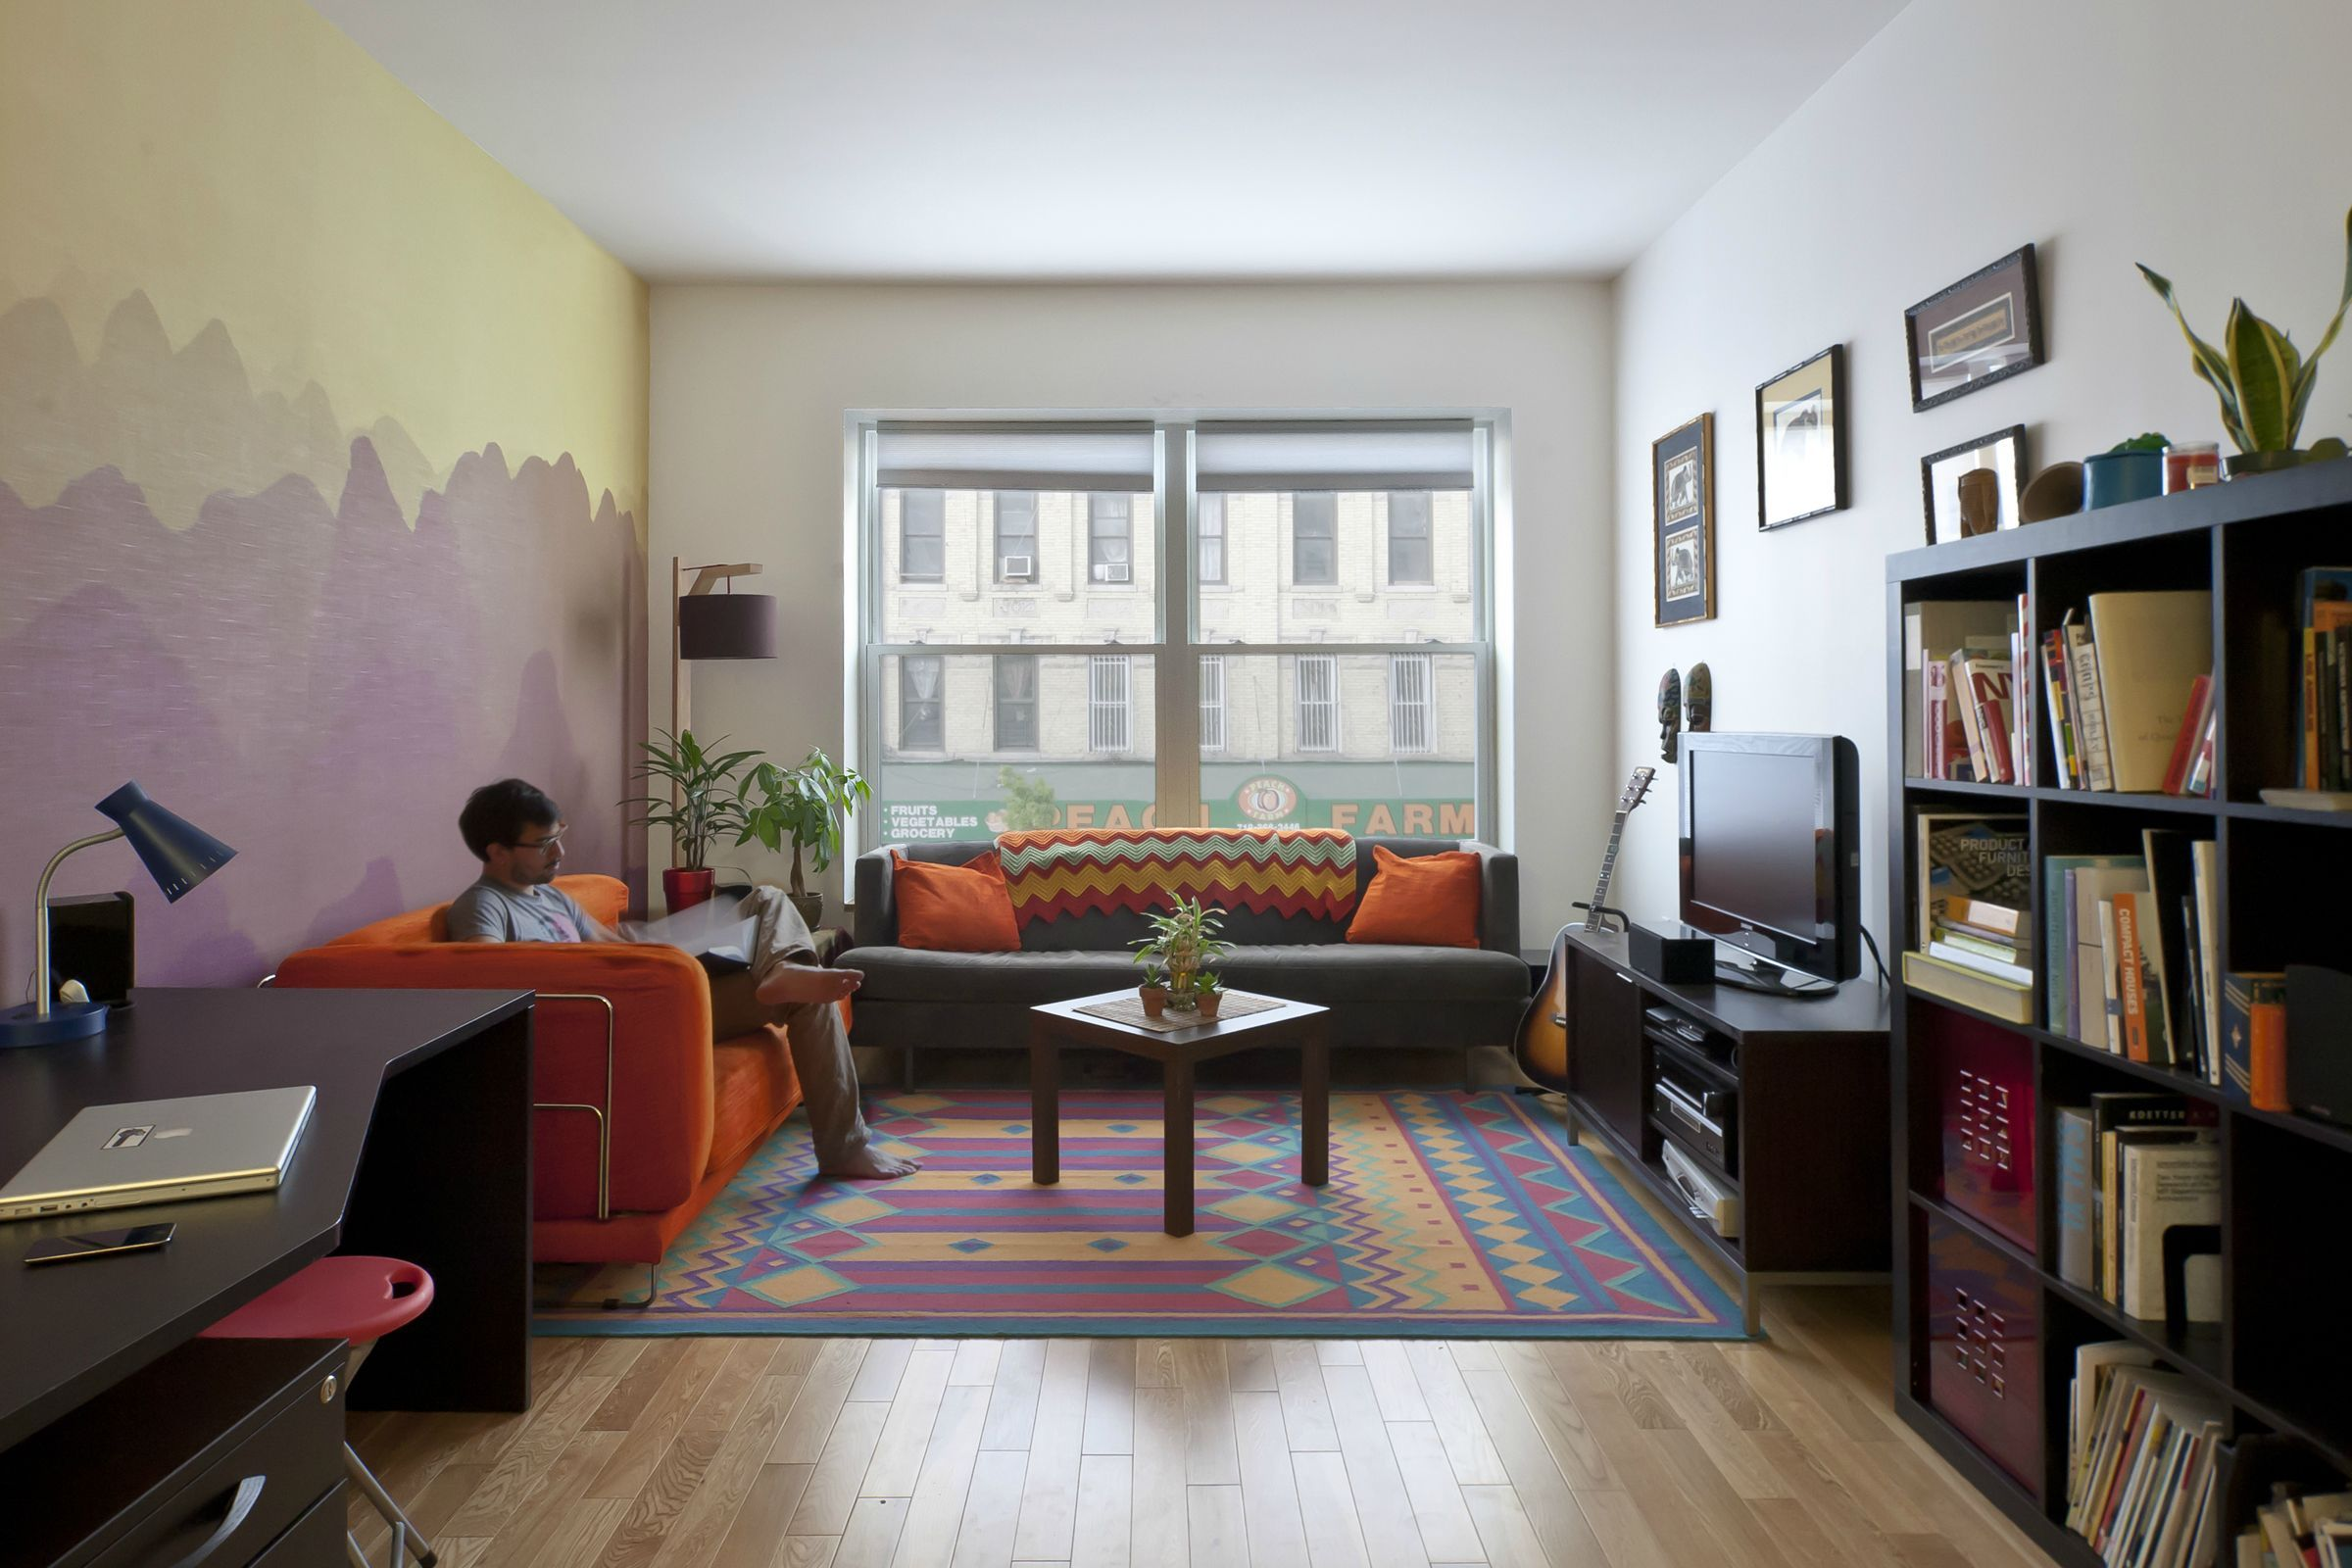 Living Room Http Www Reddit Com R Malelivingspace Comments 17ckfk My Apartment In Brooklyn Ny Home Decor Living Room Setup Apartment Living